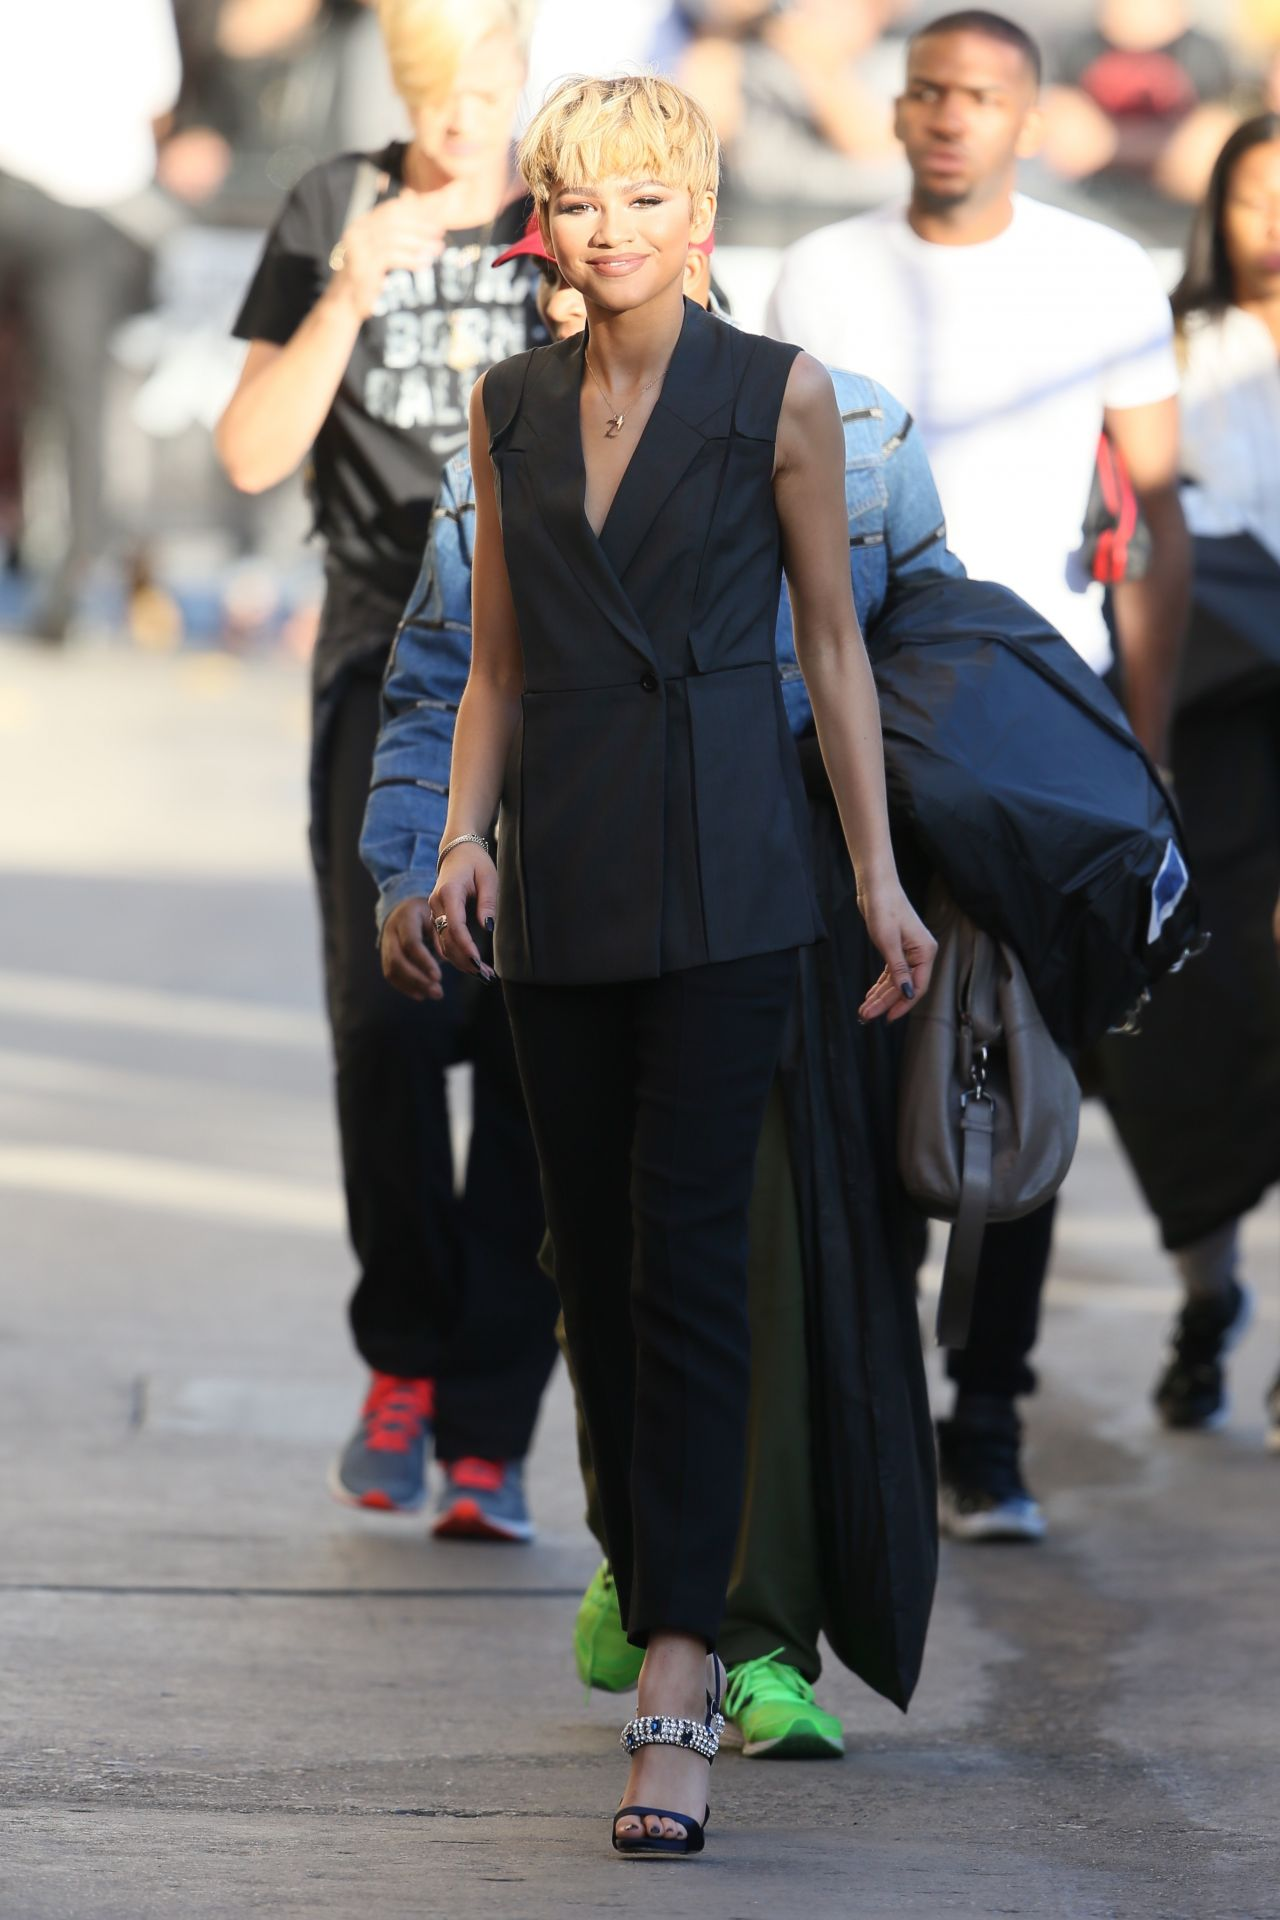 zendaya-coleman-arriving-to-appear-on-jimmy-kimmel-live-in-hollywood-2-10-2016-3